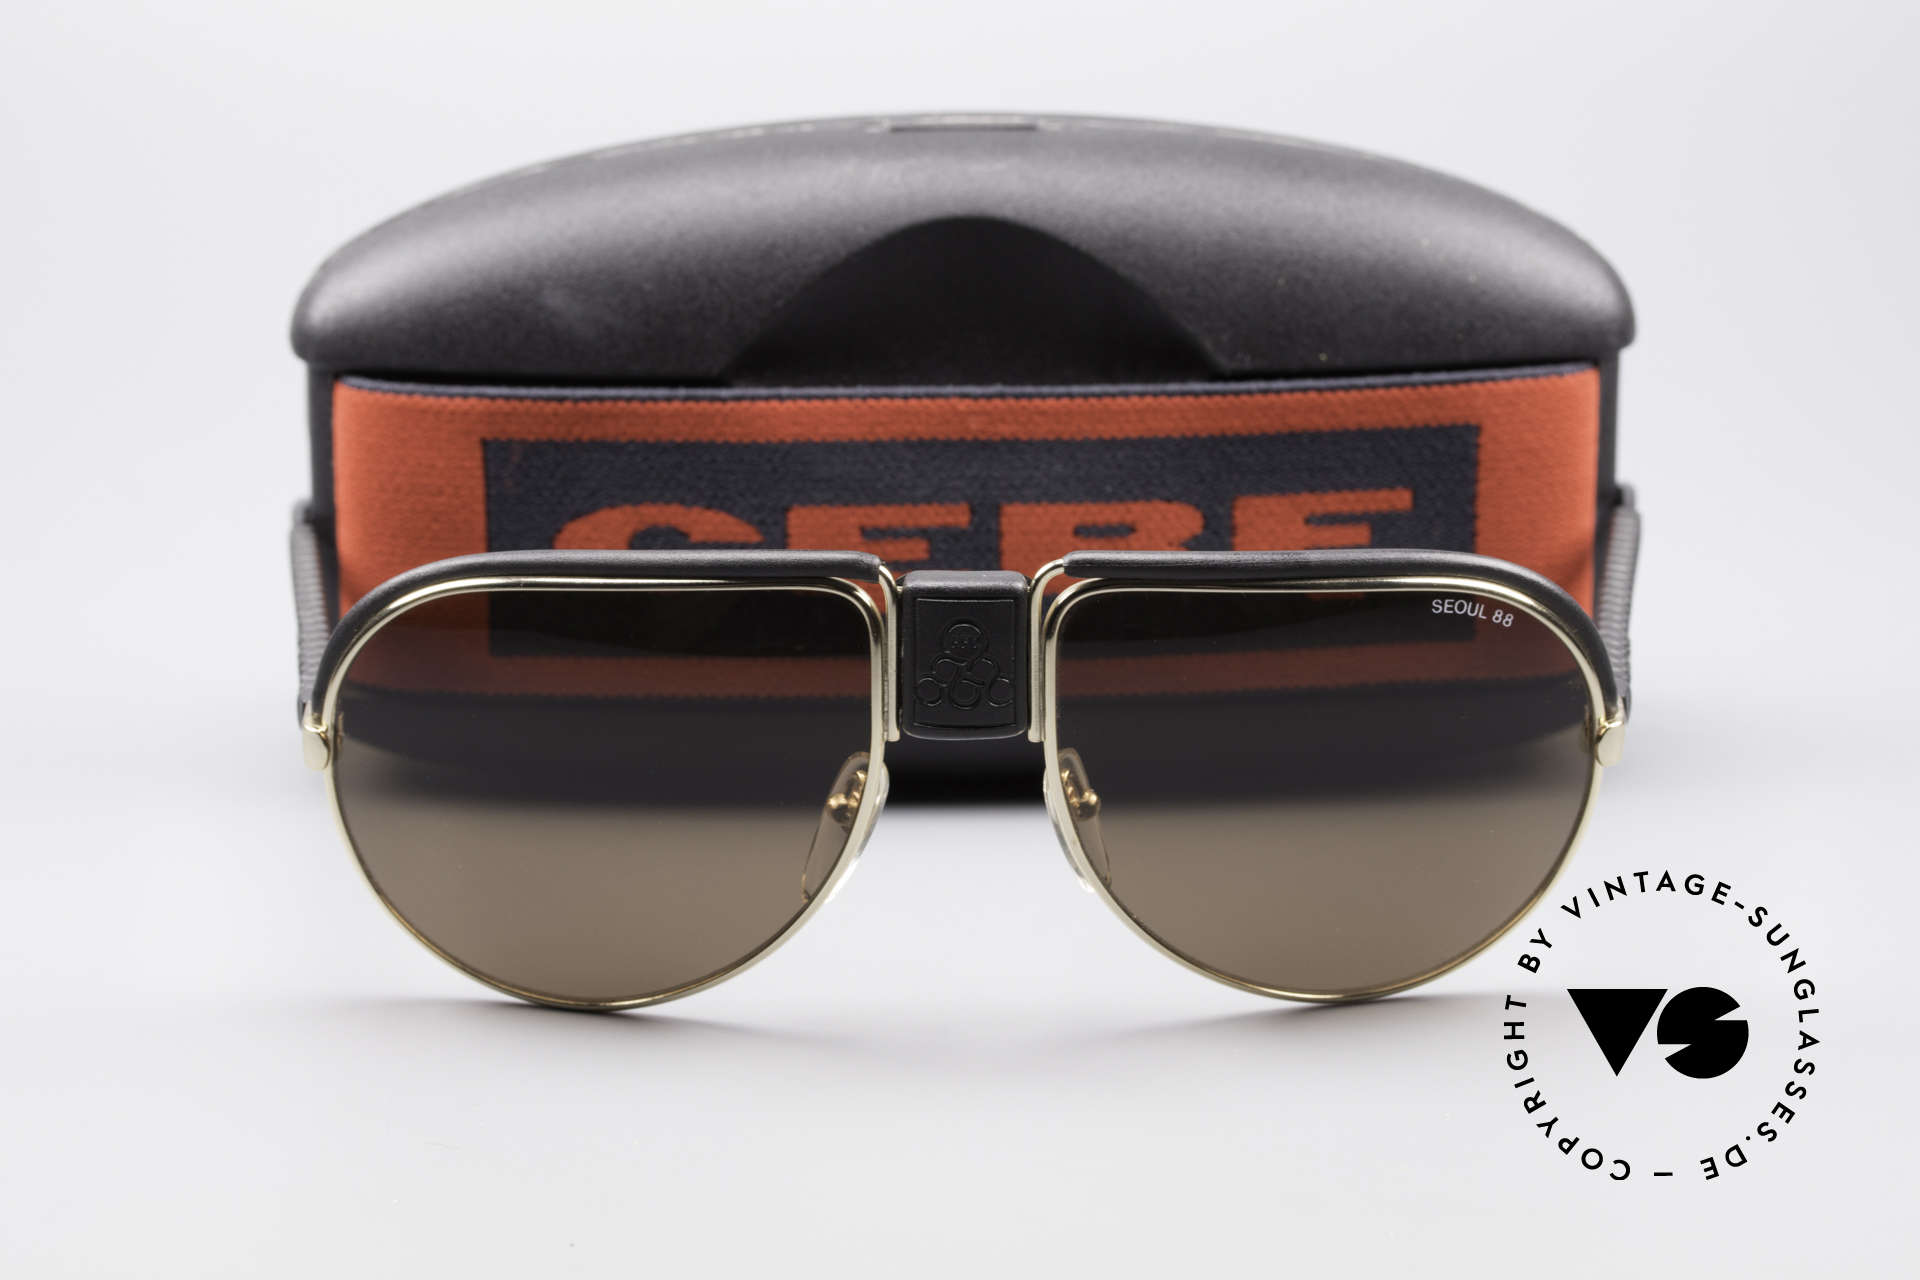 Cebe Seoul 88 Olympic Games Sunglasses, NO RETRO shades, but a precious 30 years old ORIGINAL, Made for Men